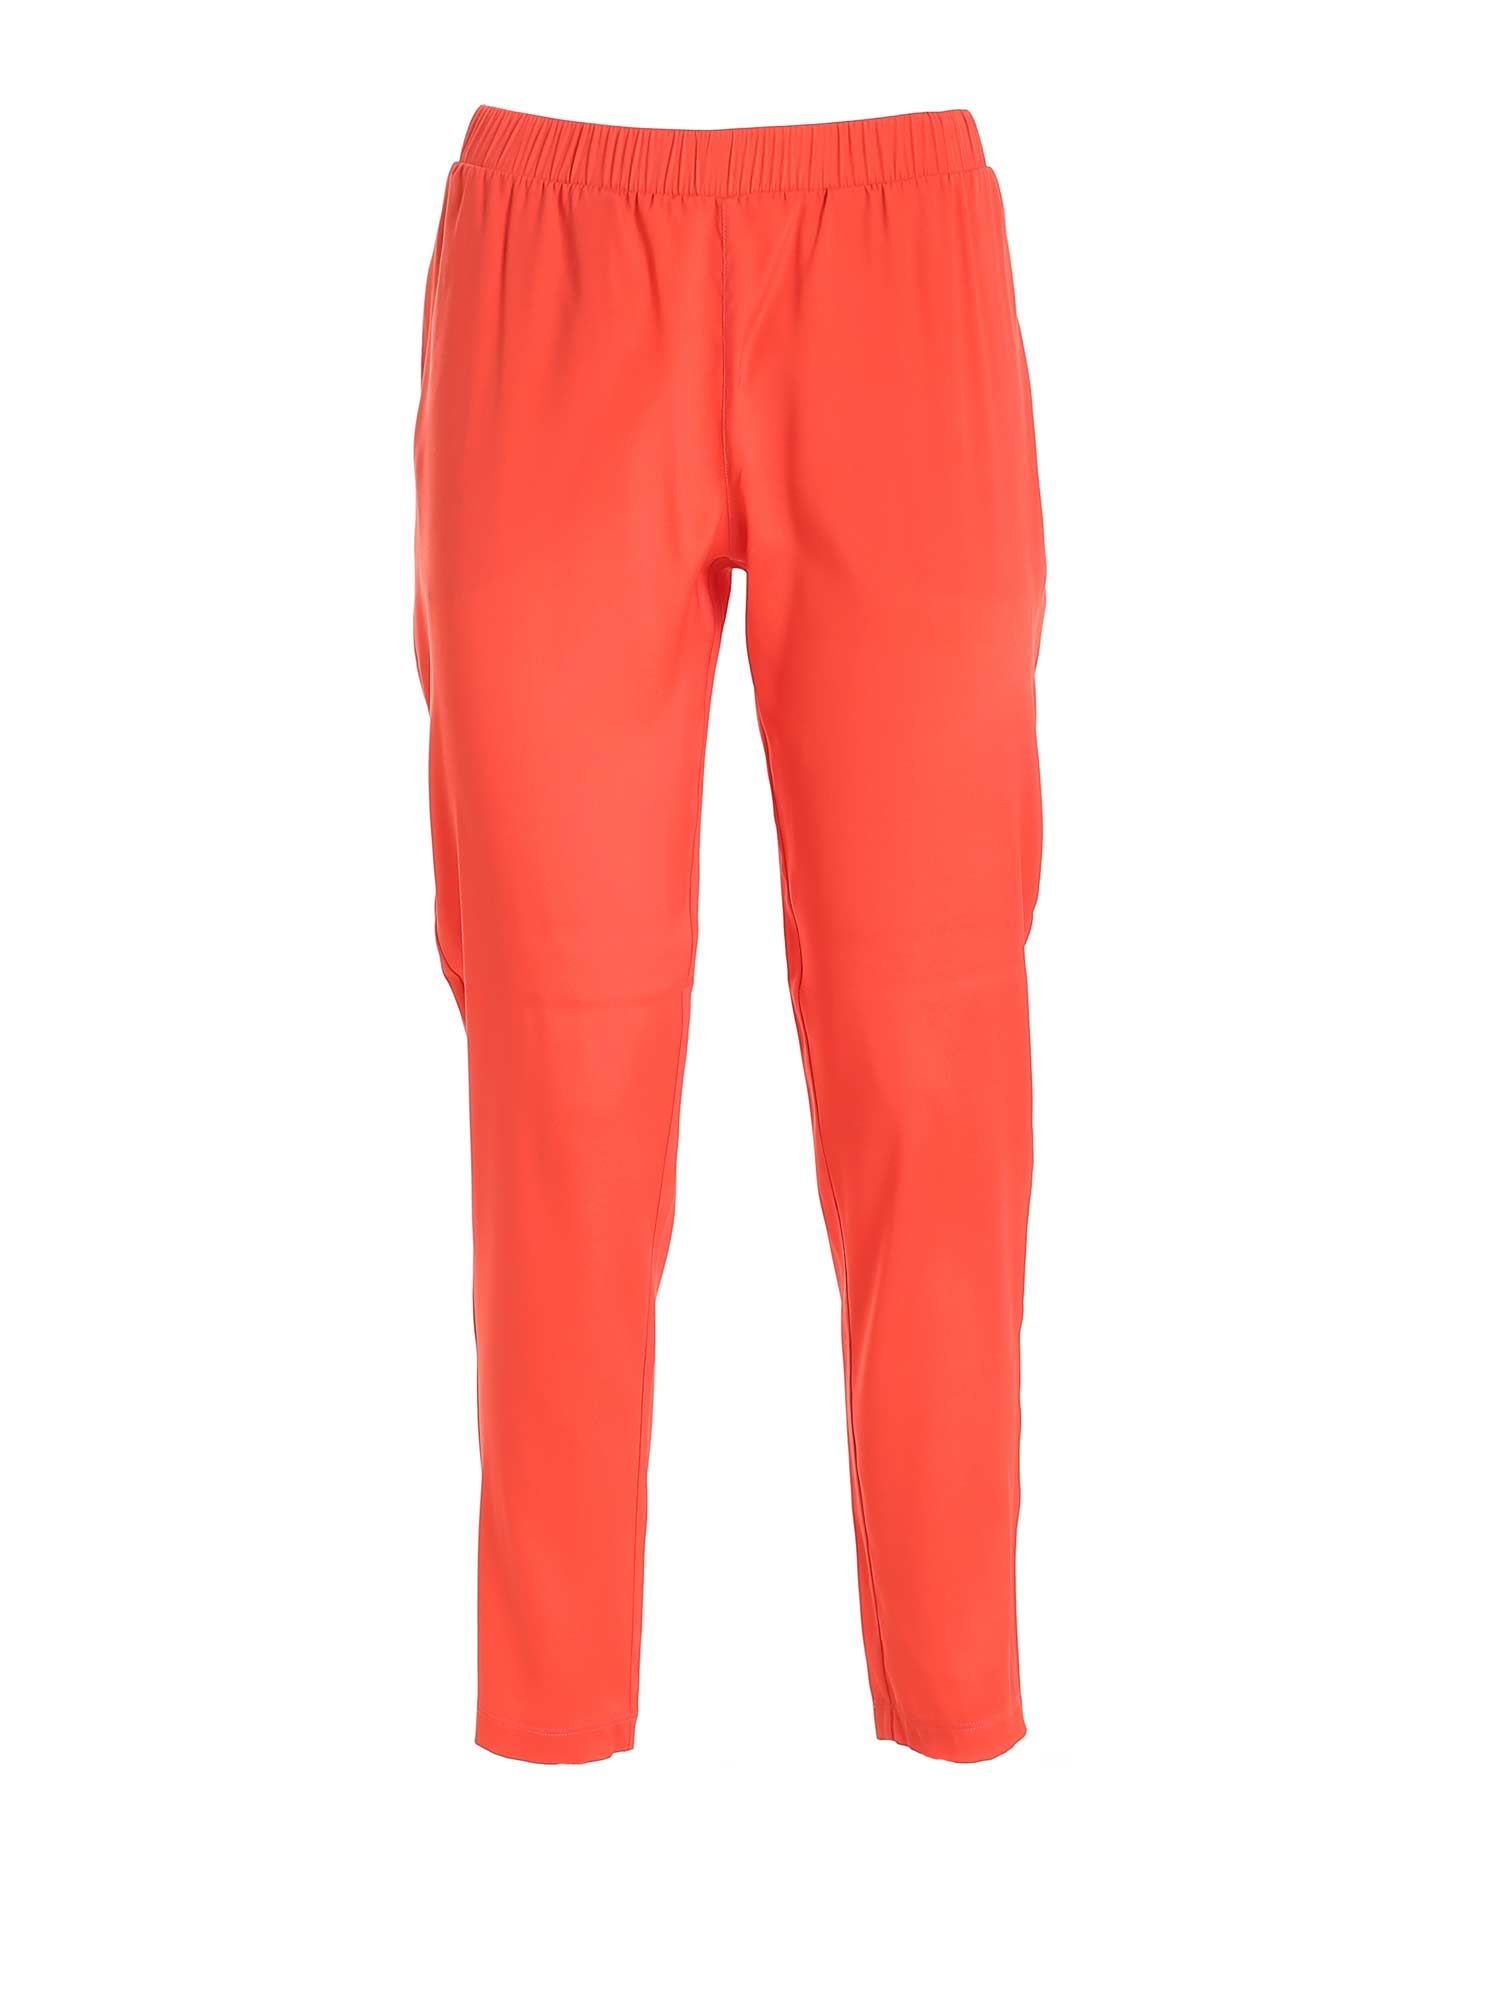 Le Tricot Perugia SILK PANTS IN CORAL RED